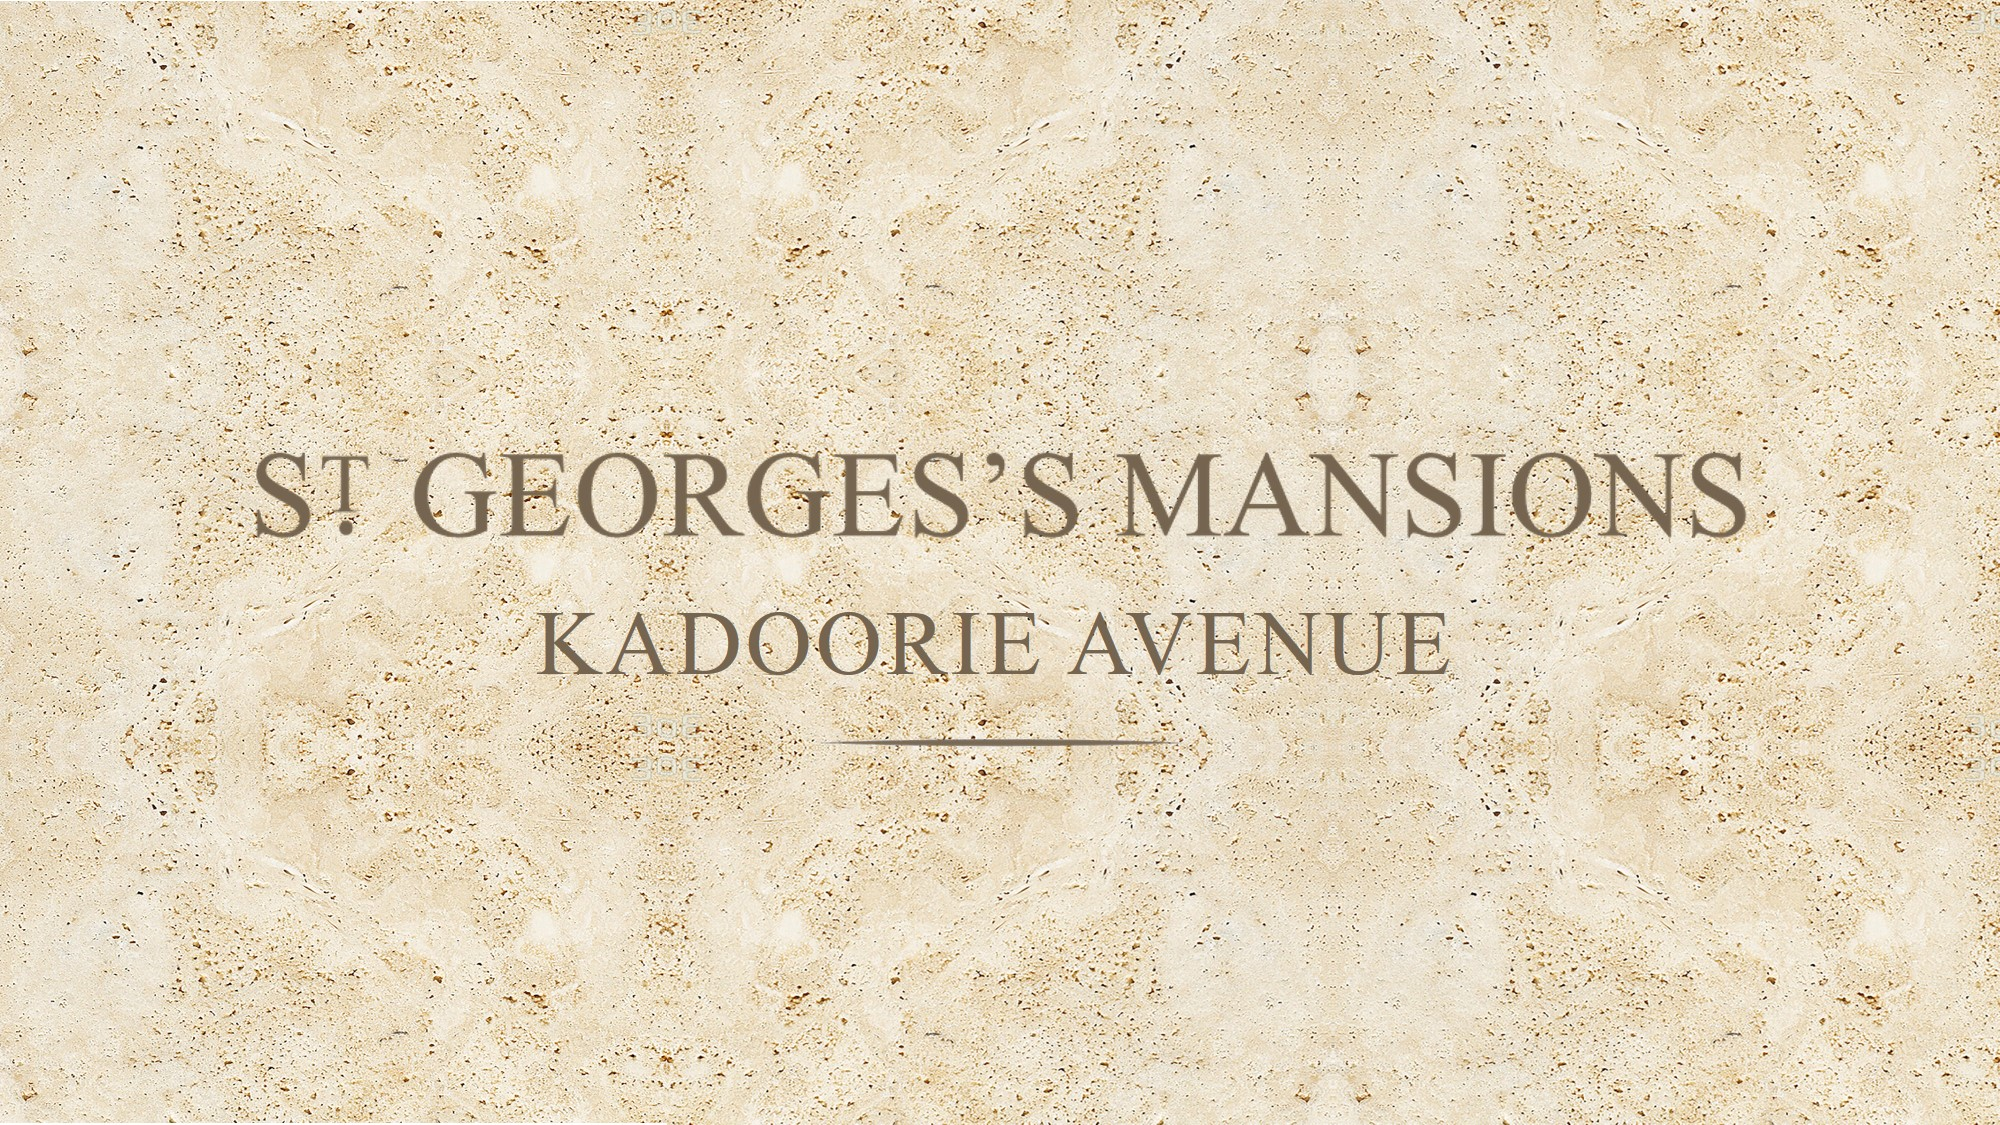 ST. GEORGE'S MANSIONS